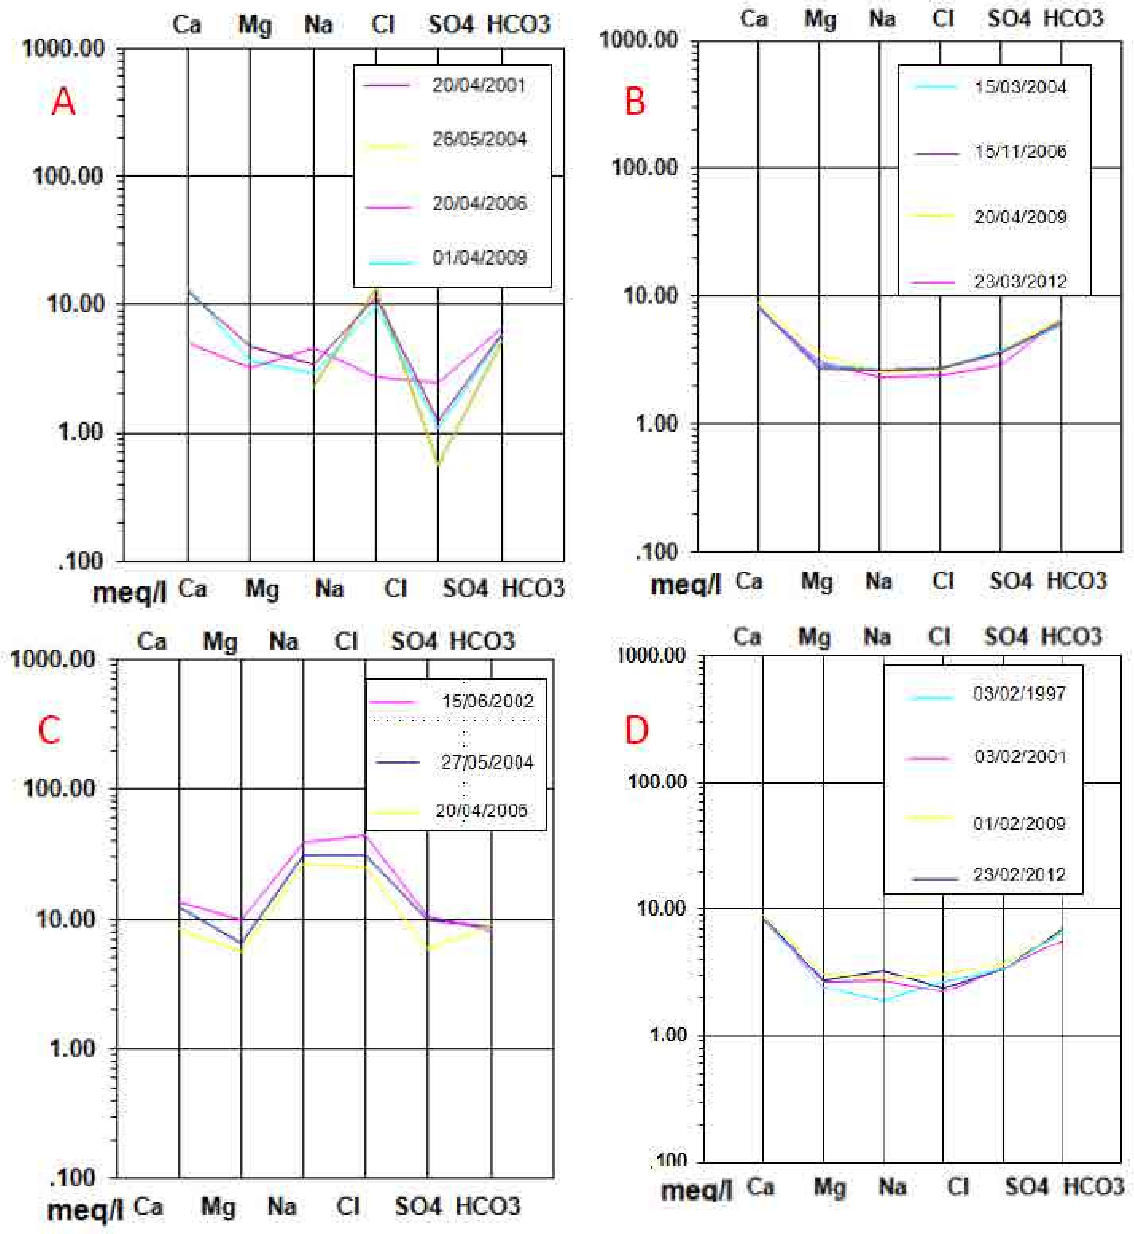 Figure 4.6. Schöeller-Berkaloff diagrams for 4 different points distributed over the study area (see the location of sampling points in figure 4.11).